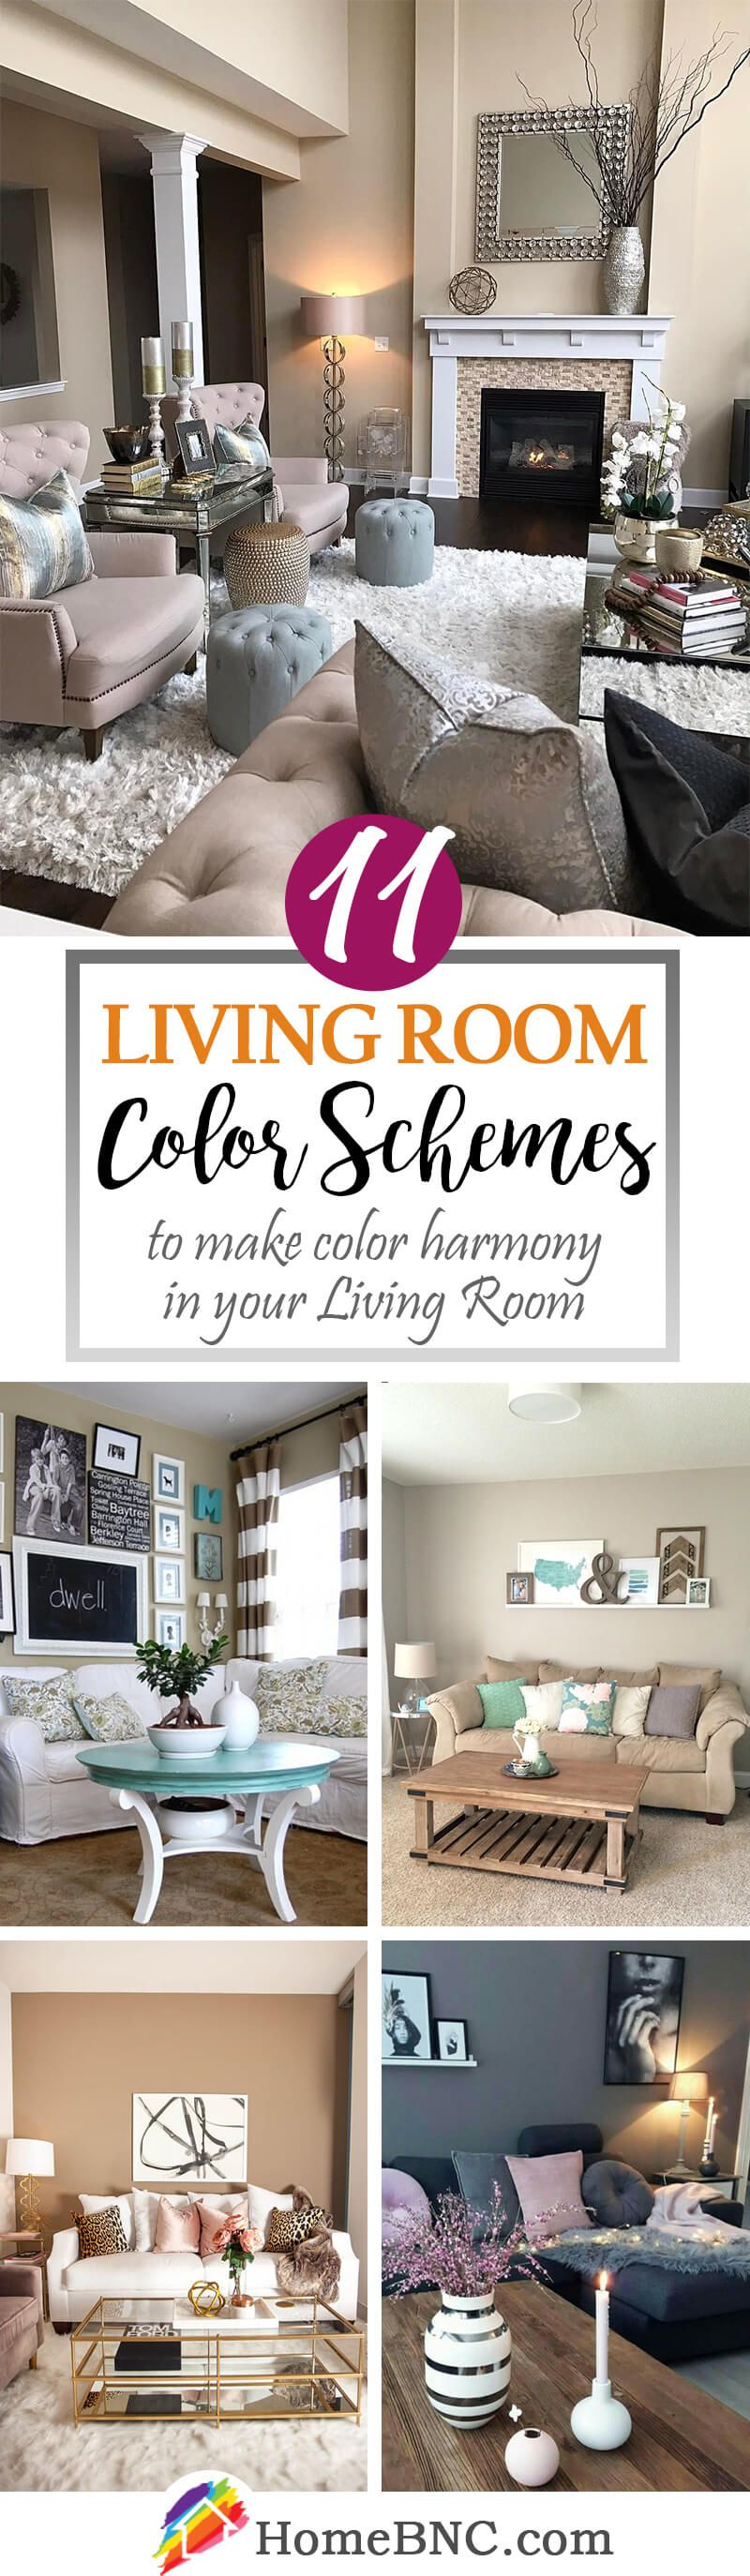 cozy living room color schemes to make color harmony in your